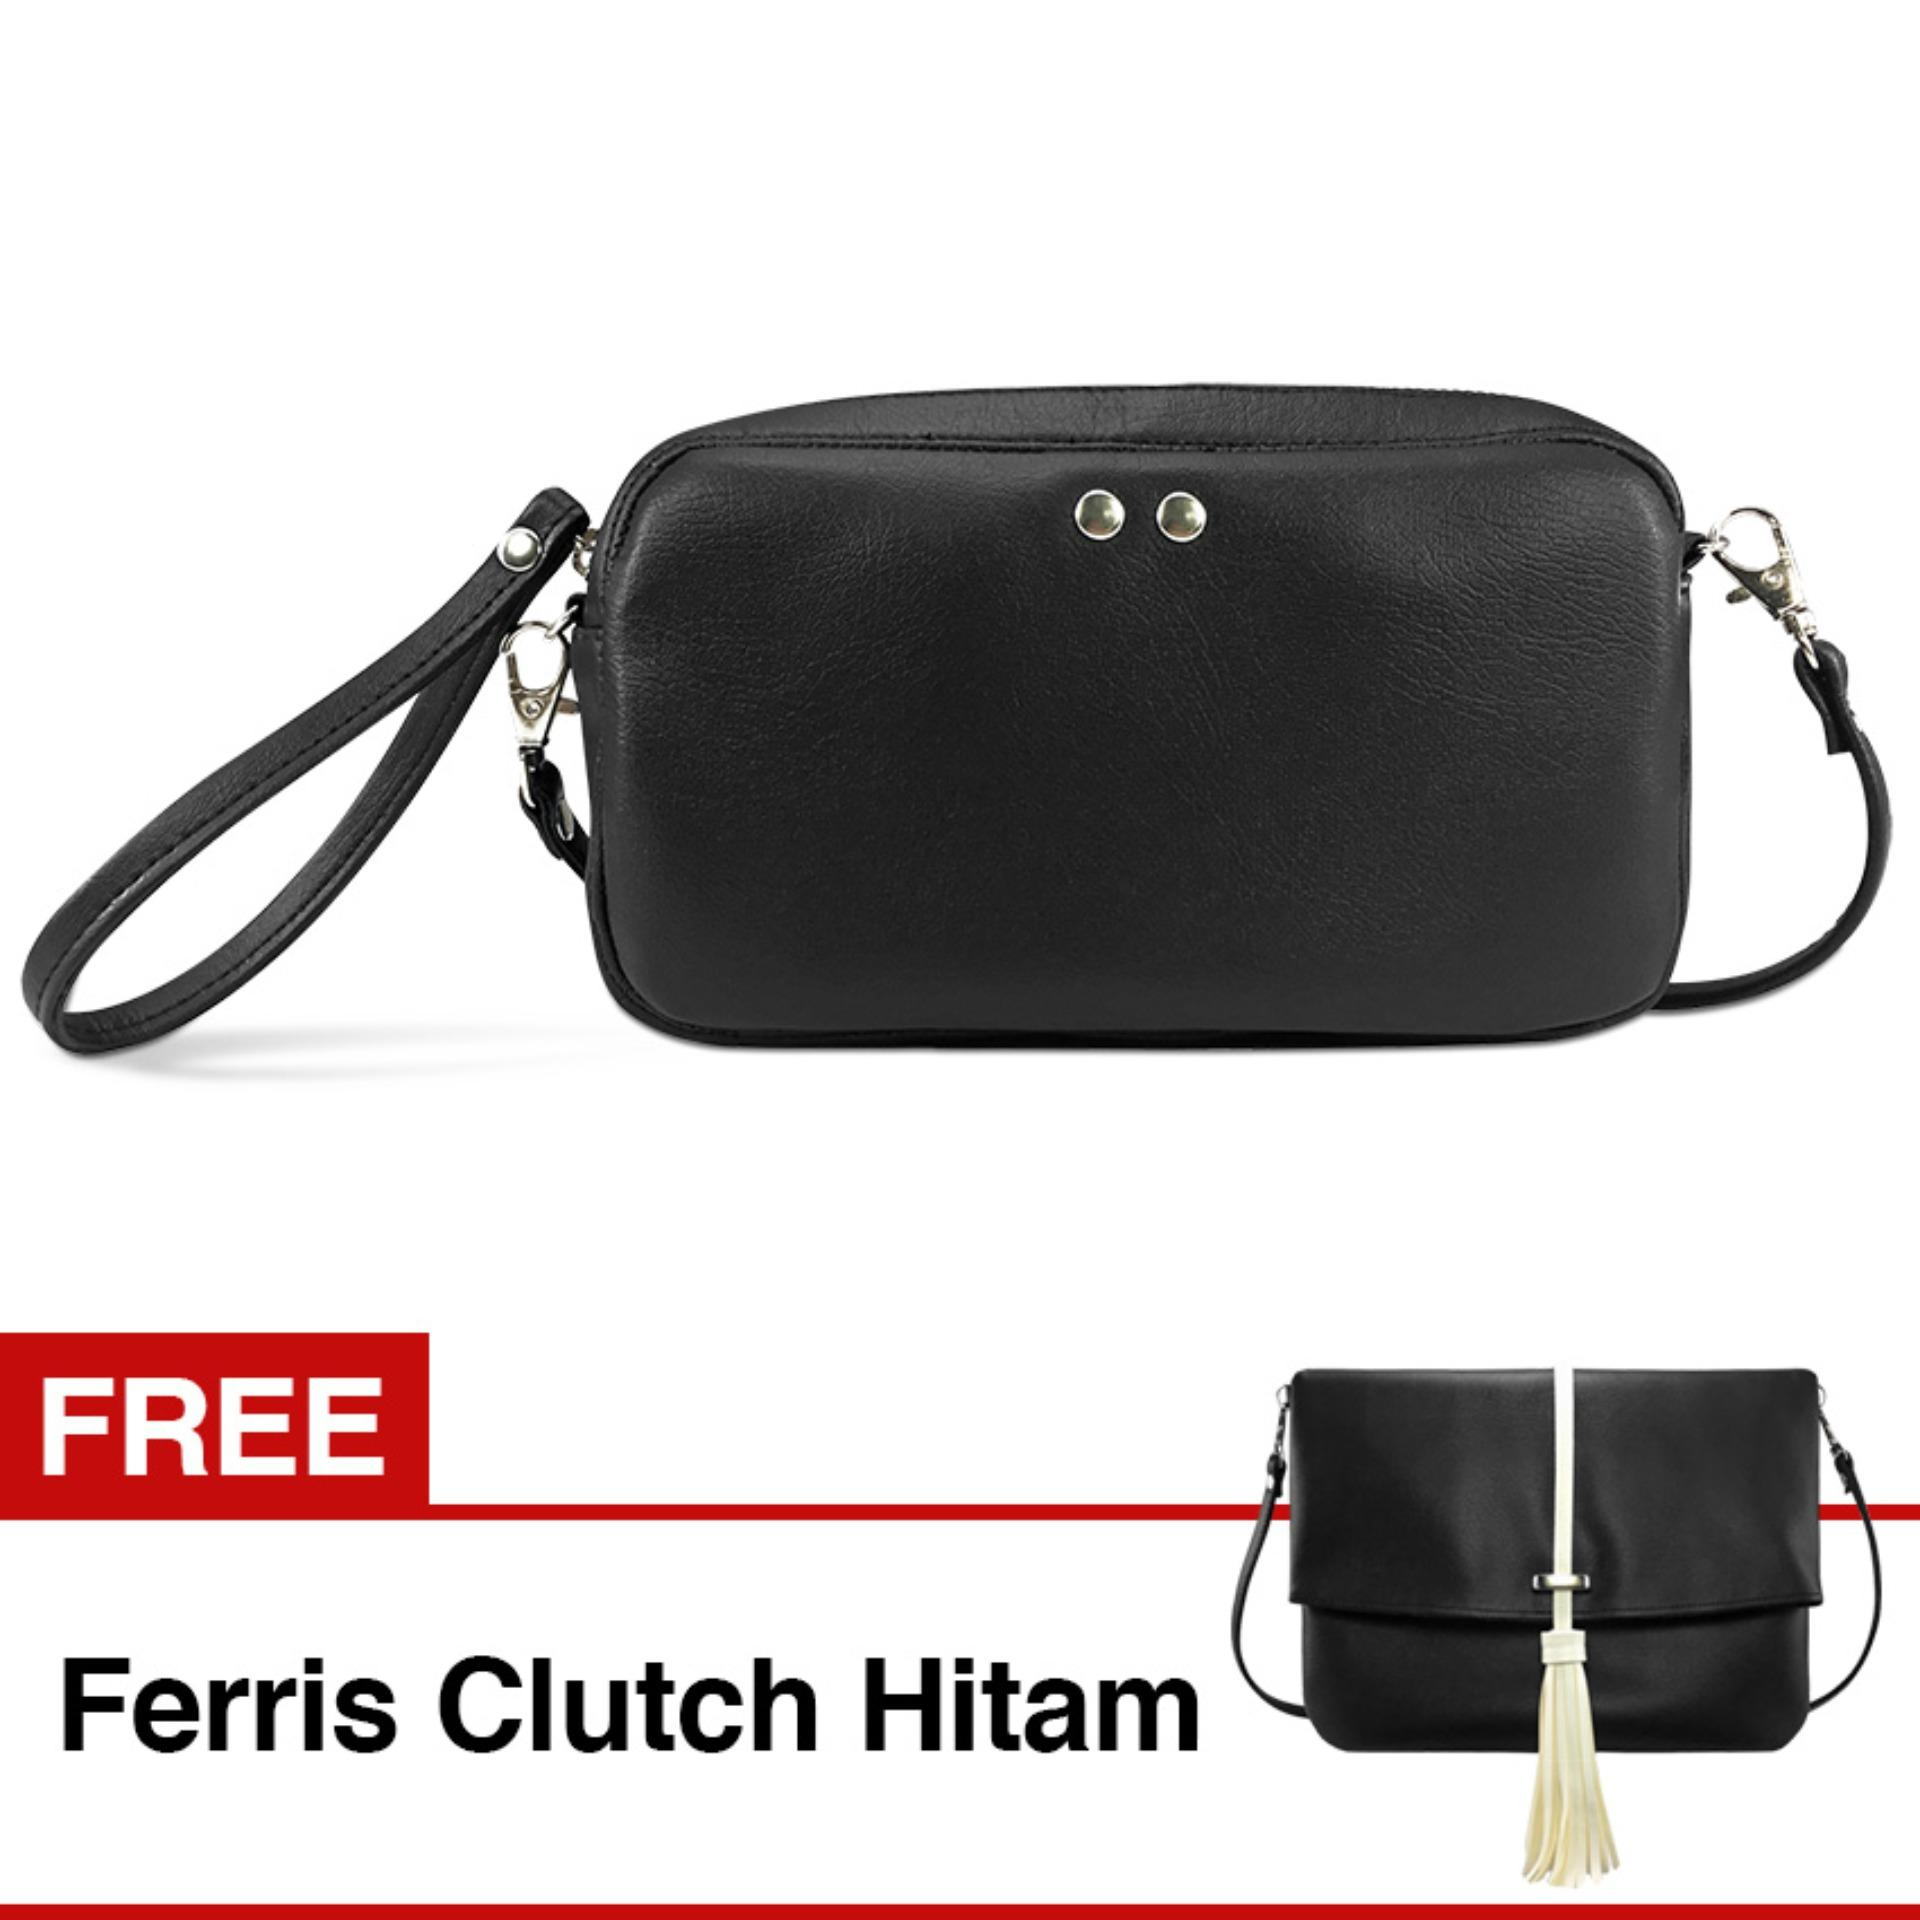 Harga Vona Hopp Gratis Free Ferris Hitam Paket 2 In 1 Tas Wanita Bahu Slempang Selempang Sling Shoulder Clutch Pouch Purse Dompet Handbag Cewe Hand Bag Trendy Best Seller Fashion Crossbody Tote Pu Leather Kulit Sintetis Korean Style Bundling Buy 1 Get 1 Vona Terbaik